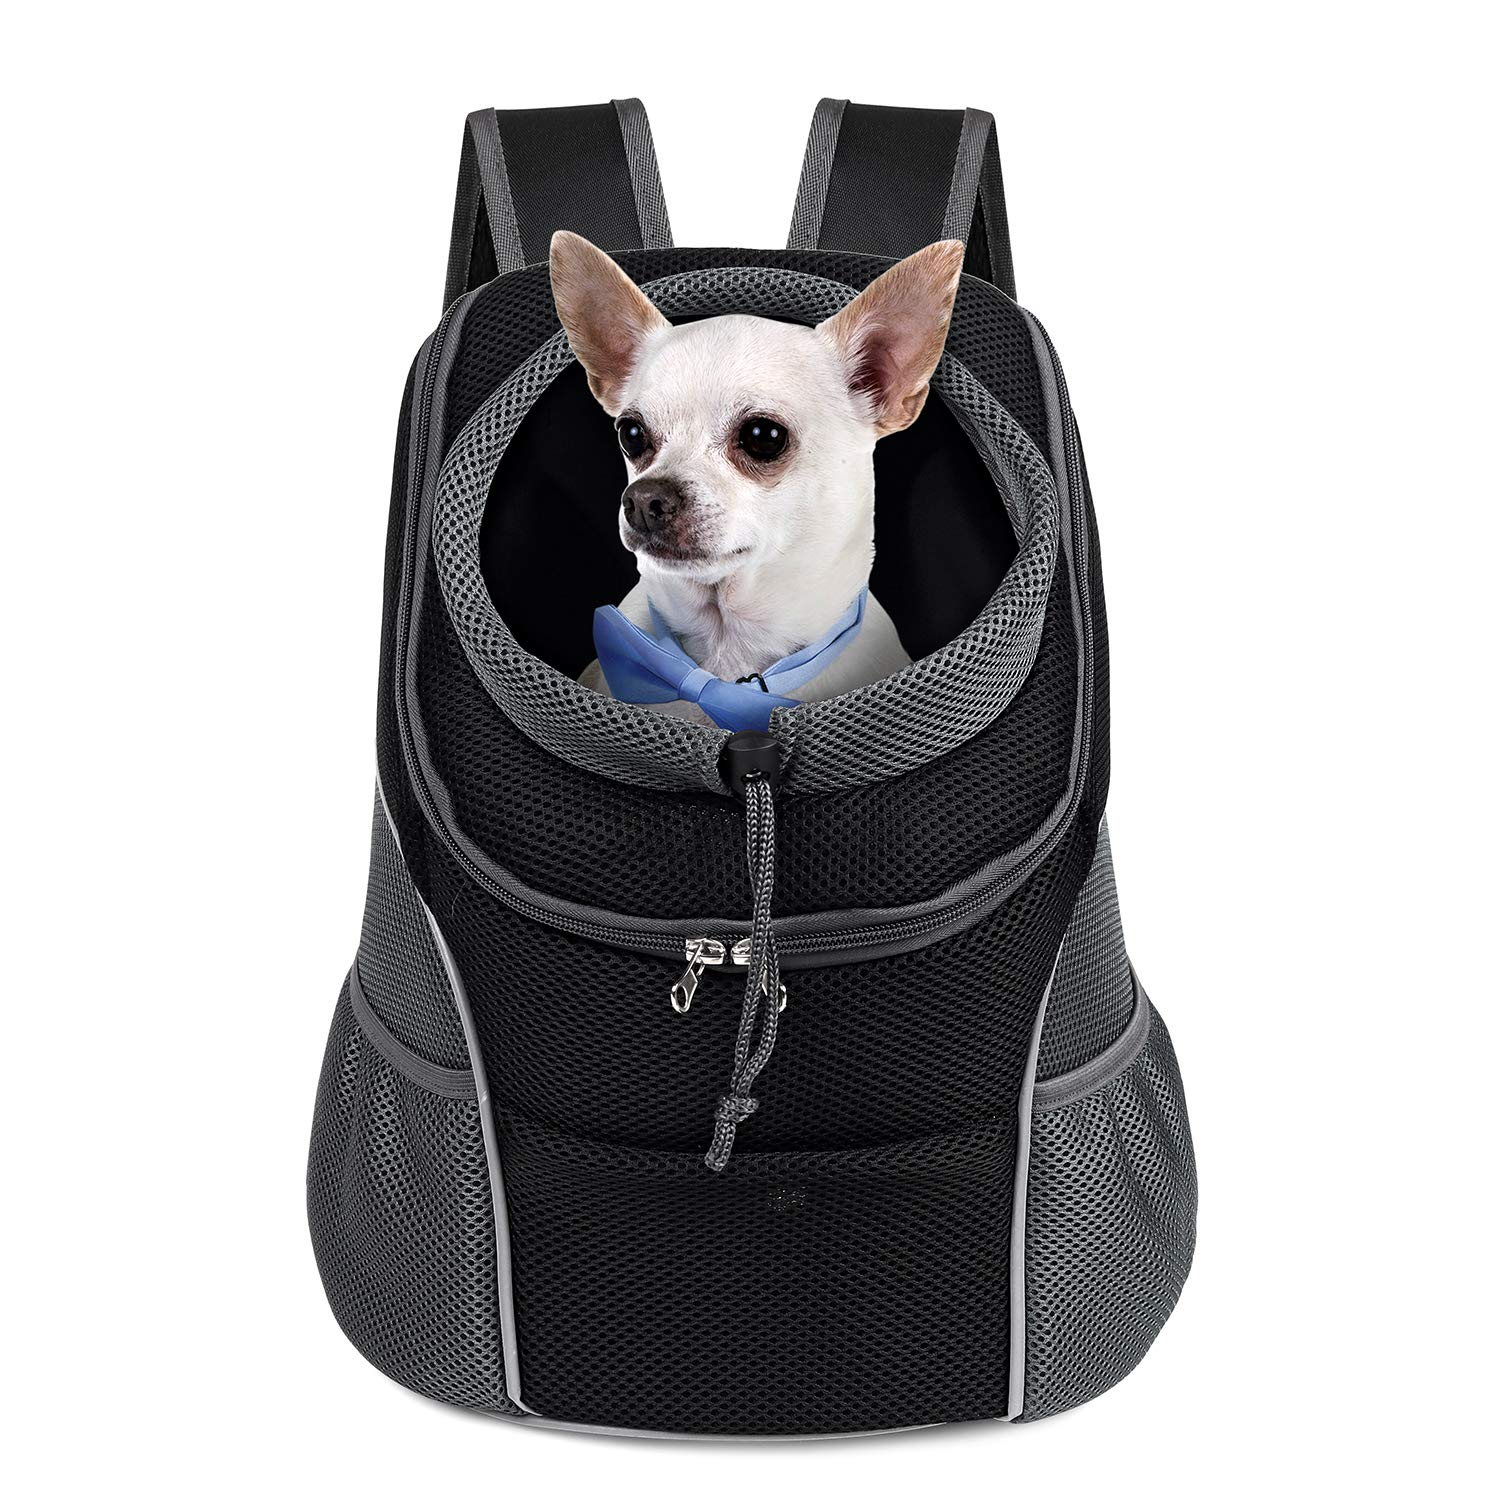 Amazon.com : WOYYHO Pet Dog Carrier Backpack Puppy Dog Travel Carrier Front Pack Breathable Head-Out Backpack Carrier for Small Dogs Cats Rabbits (M ( up to 10 lbs ) , Black ) : Pet Supplies